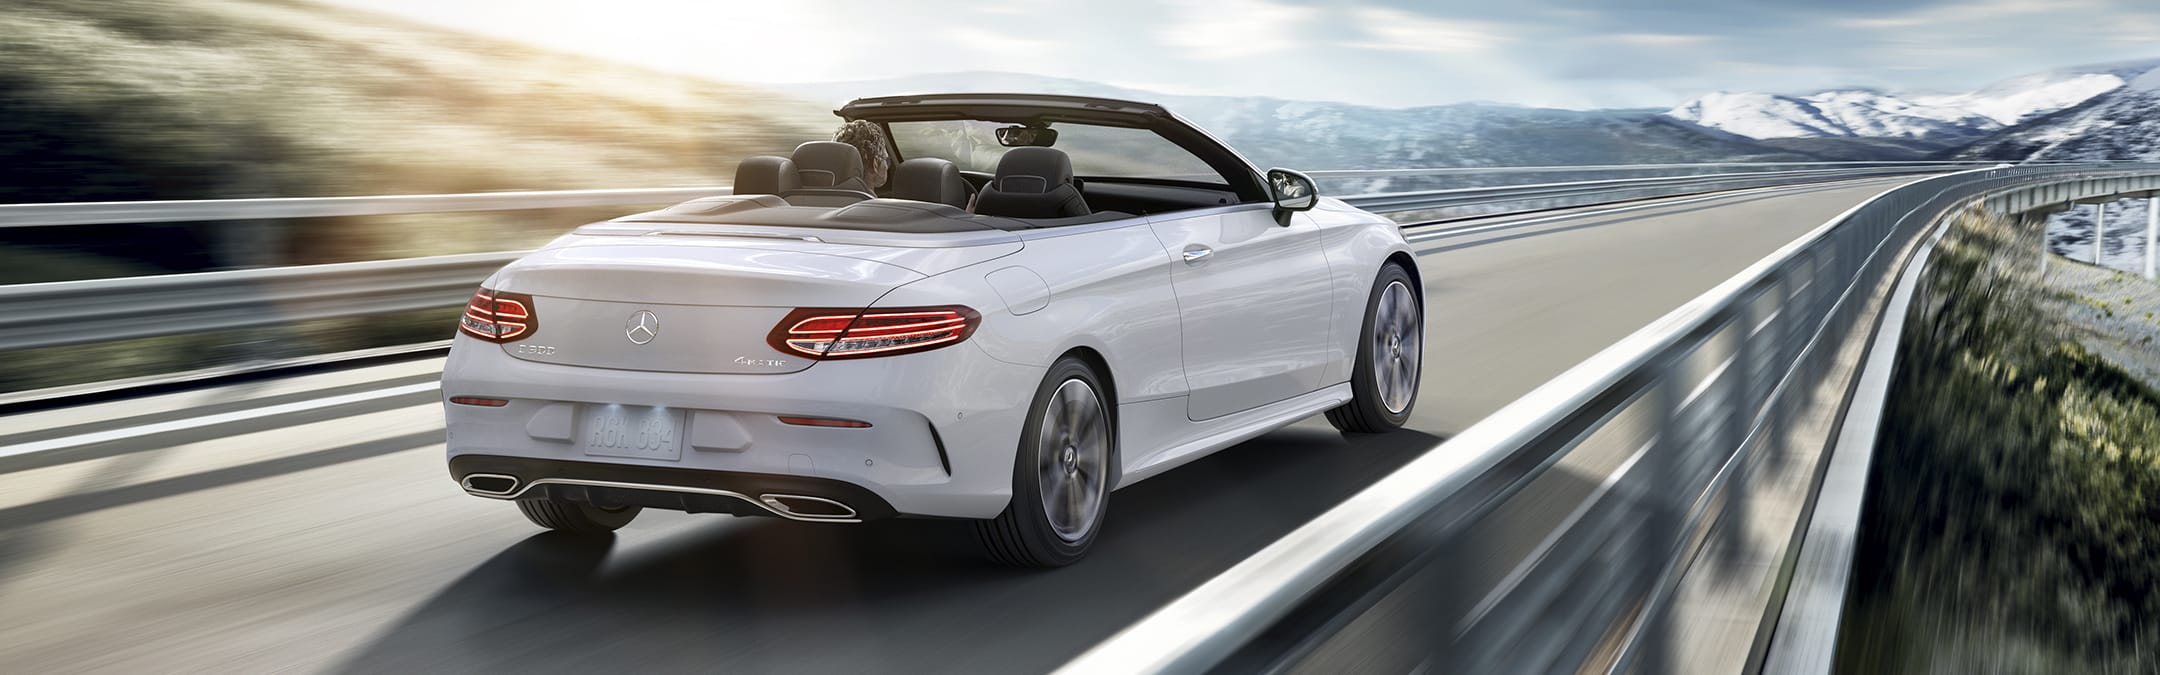 2019 C-Cabriolet Performance